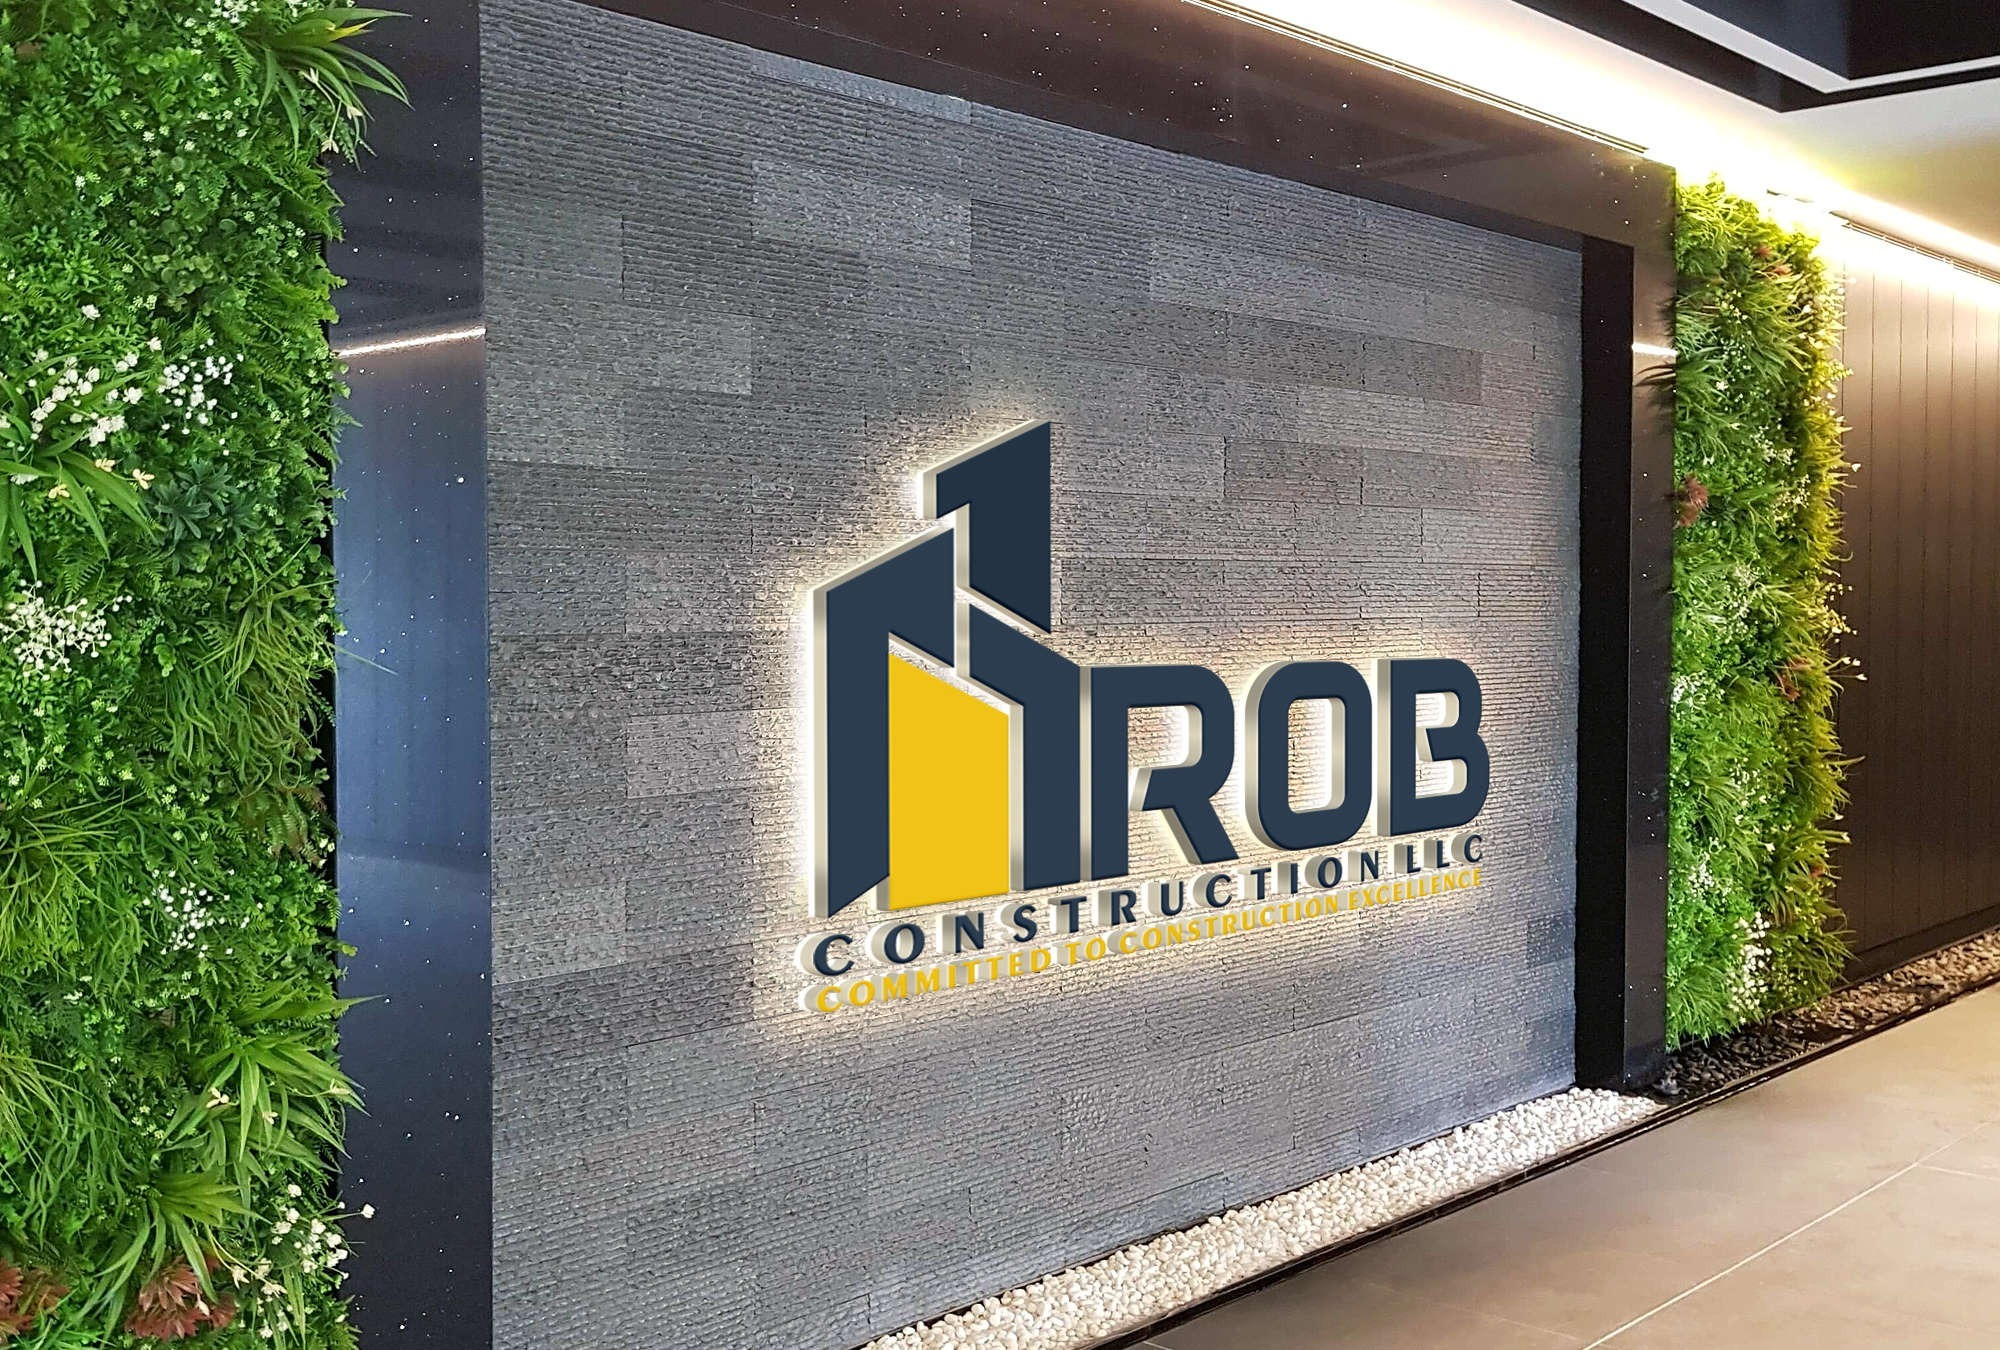 ROB construction logo on brick wall